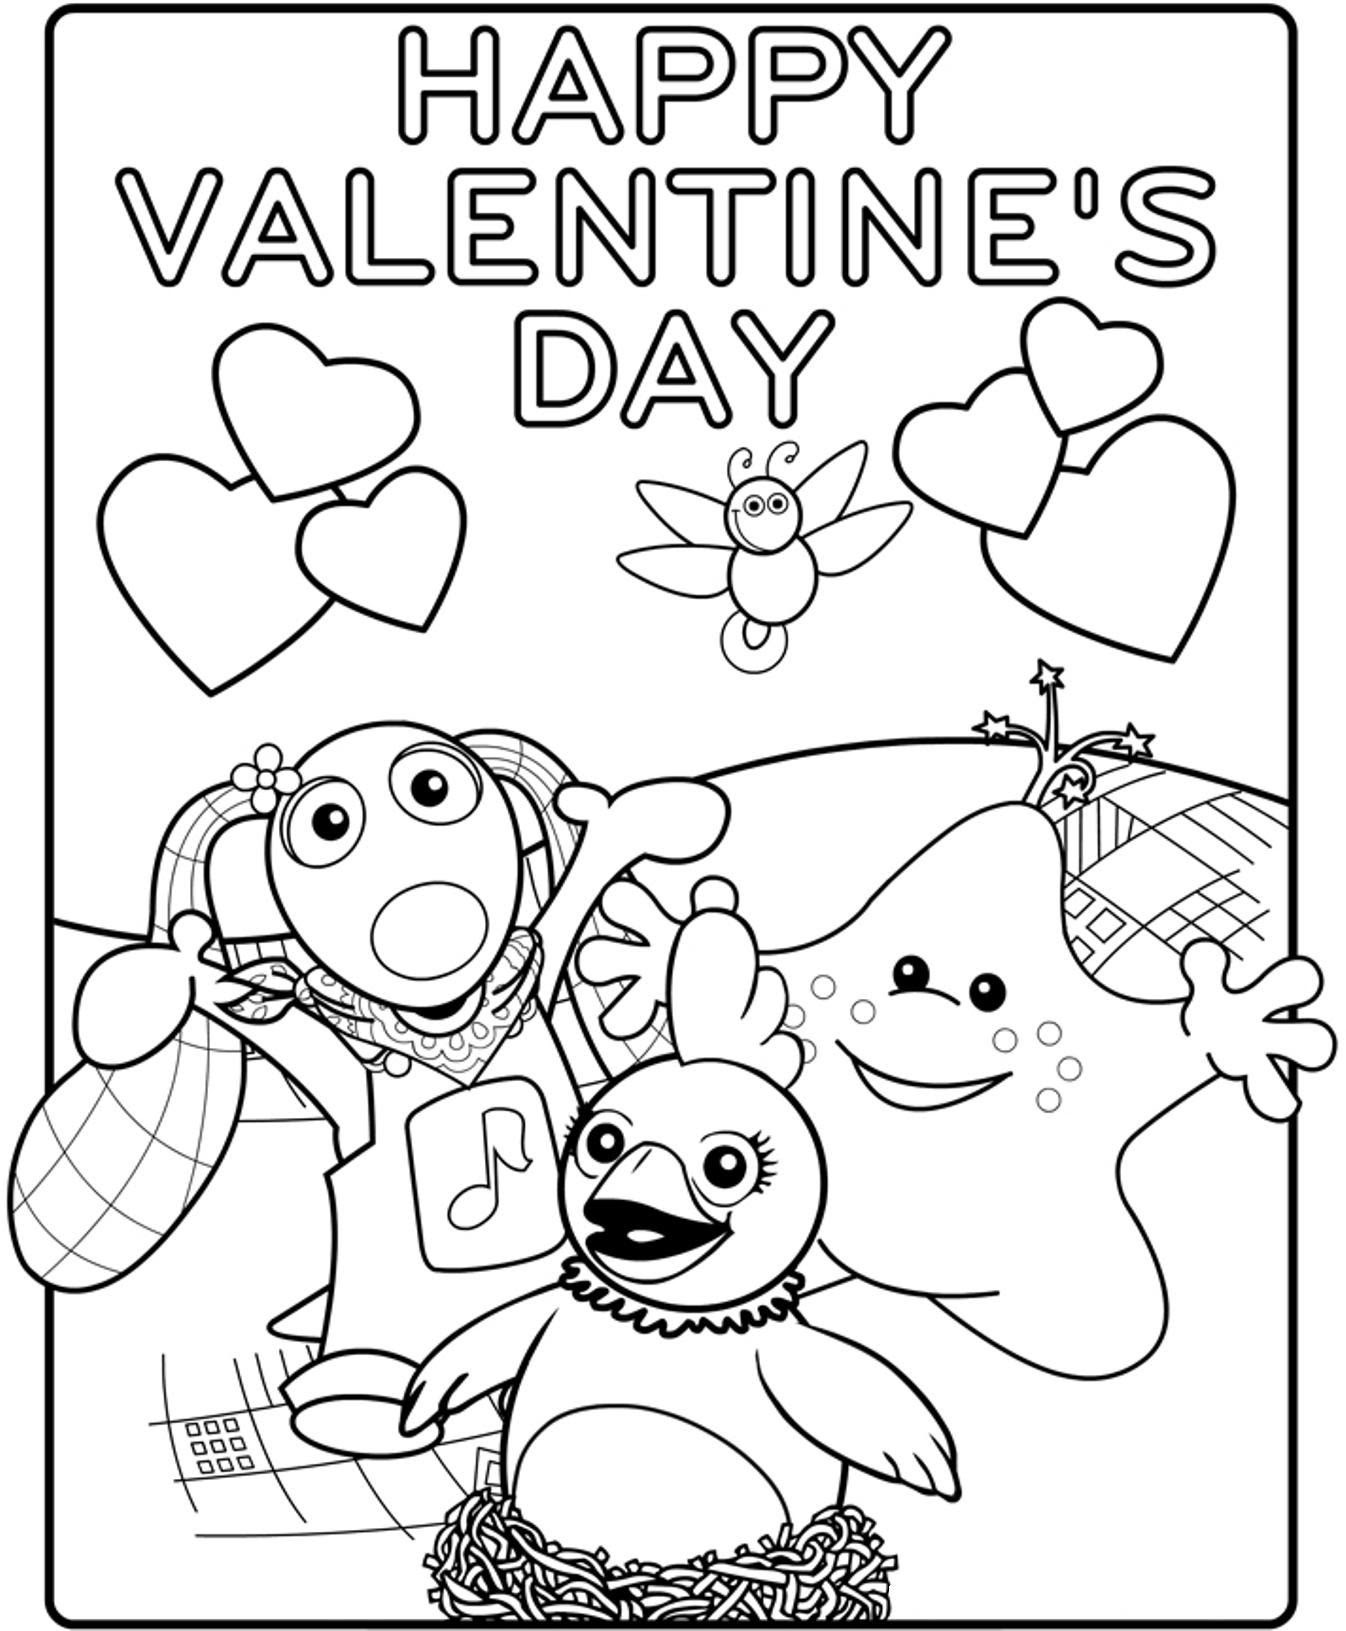 Valentine Coloring Pages Pdf at GetColorings.com | Free ...